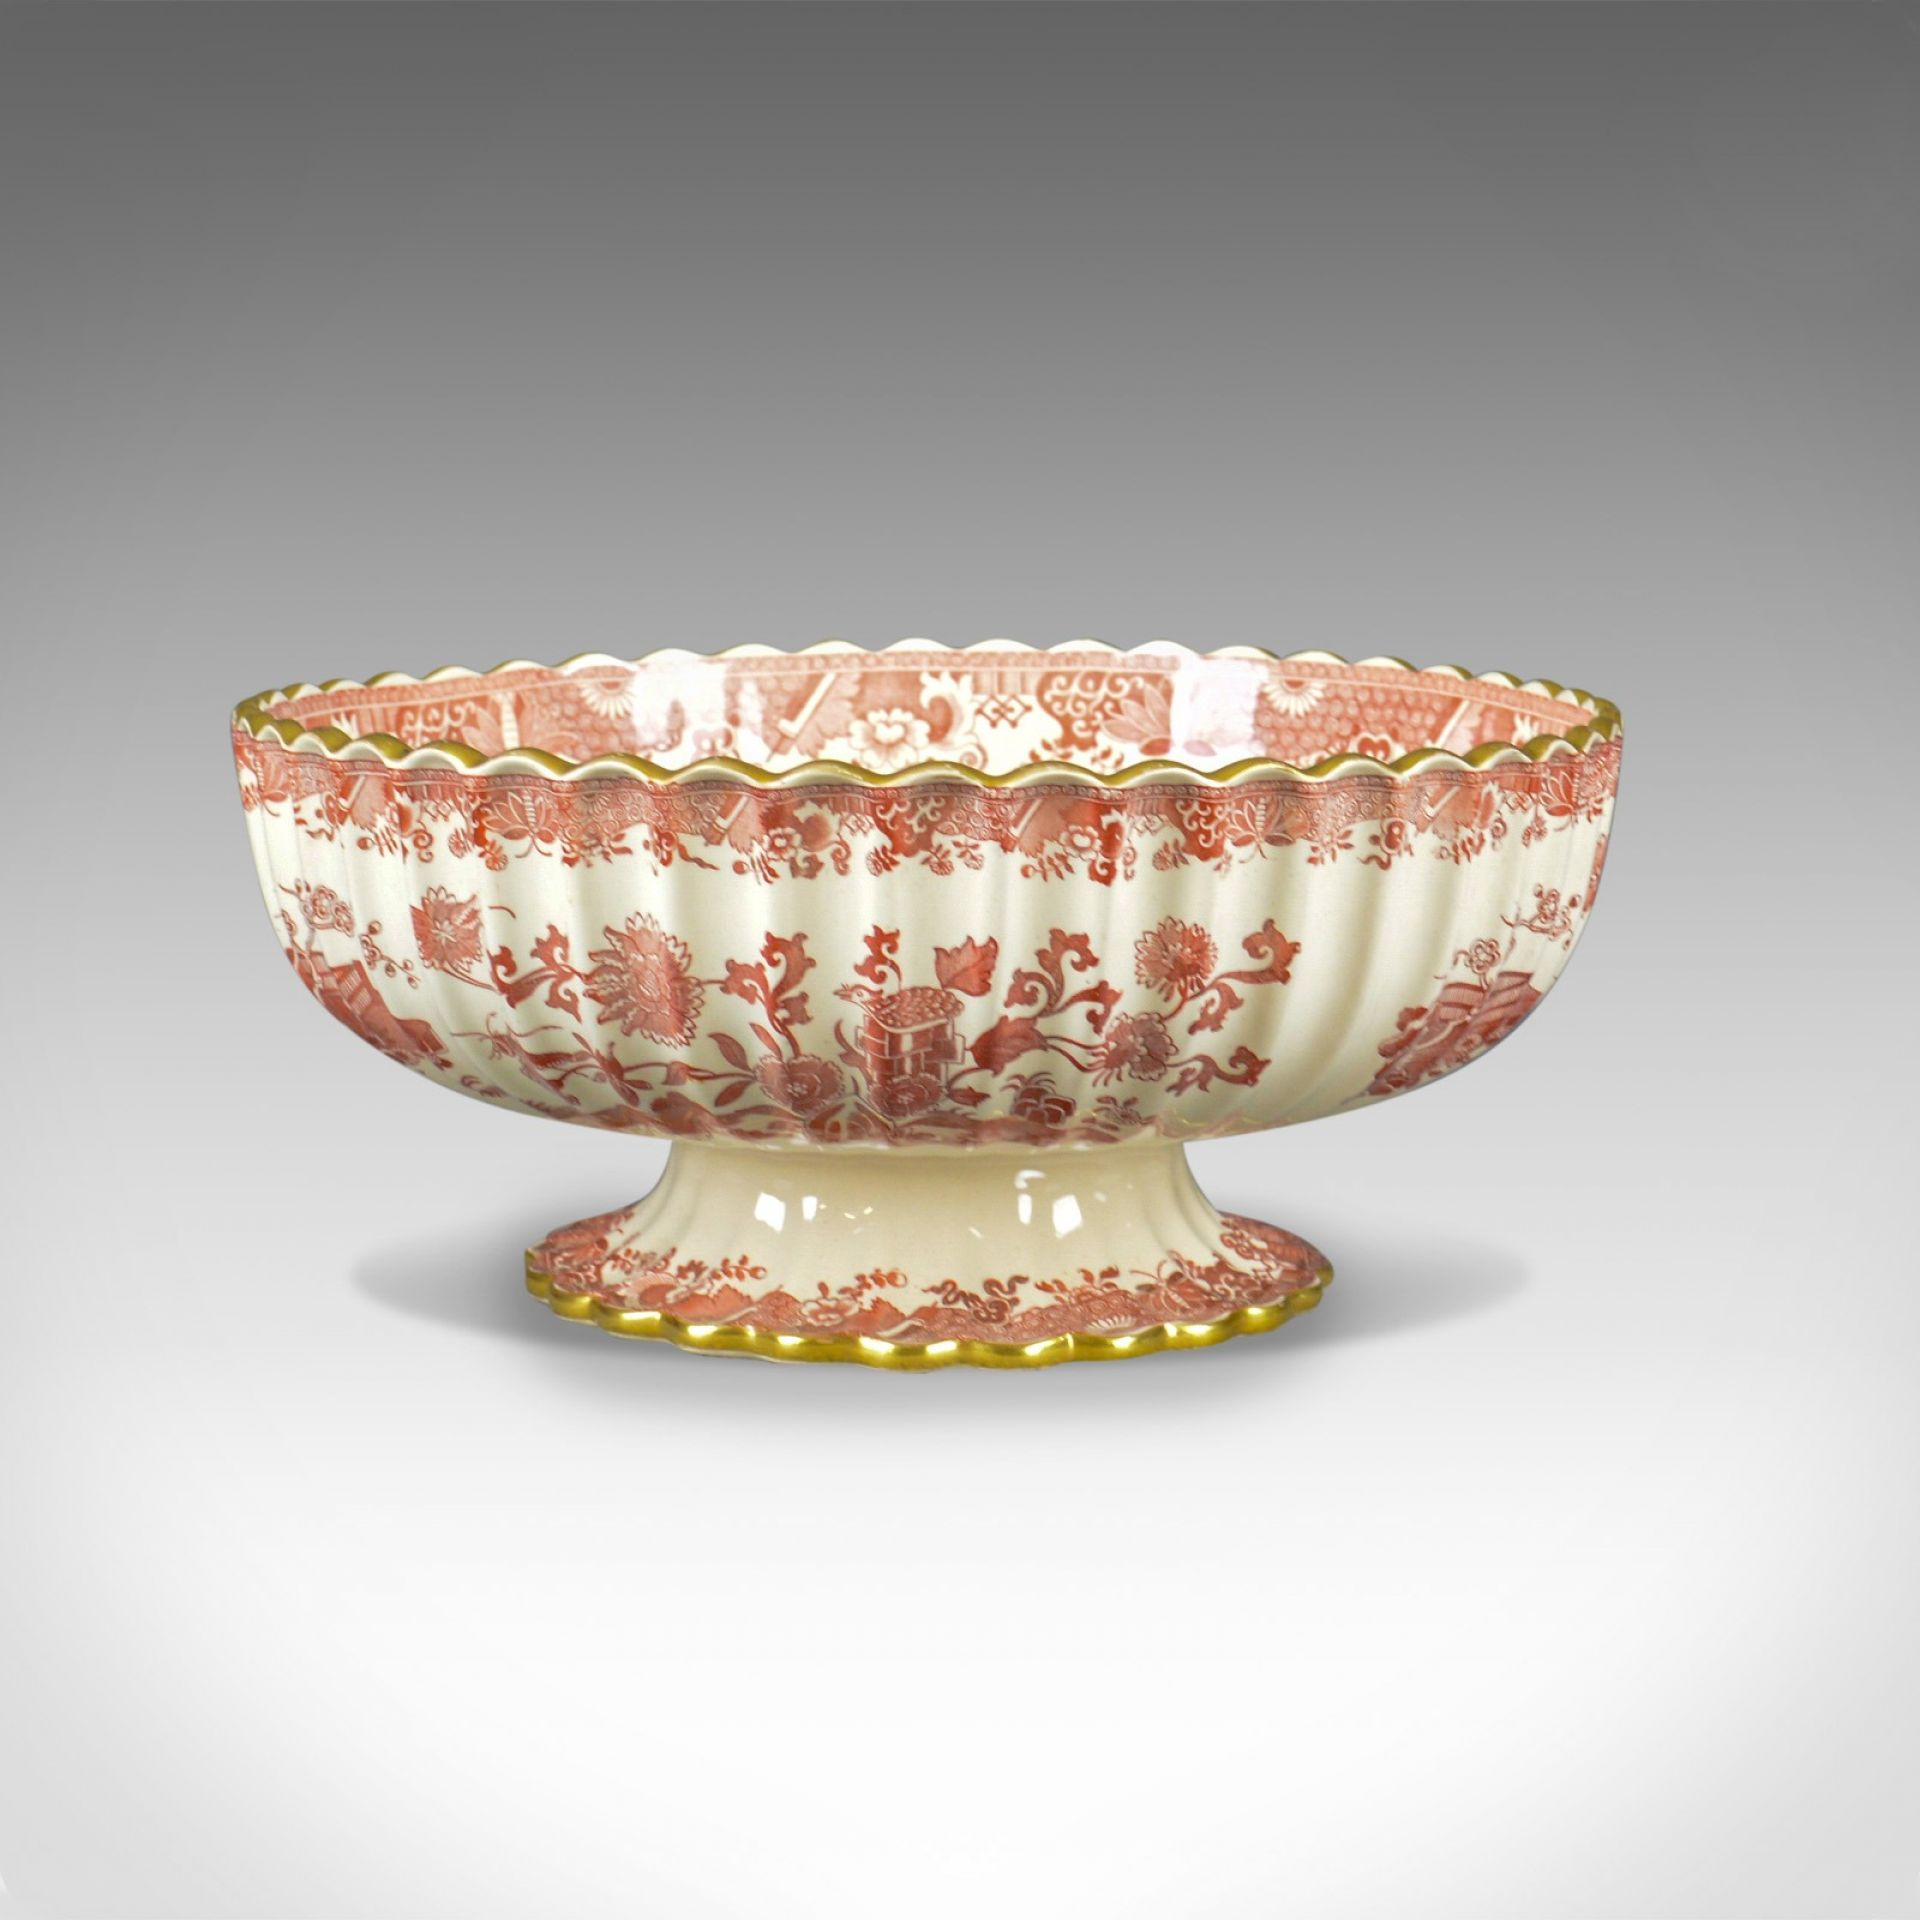 Antique Footed Bowl, Red and White, Copeland Spode, Grasshopper, c.1900